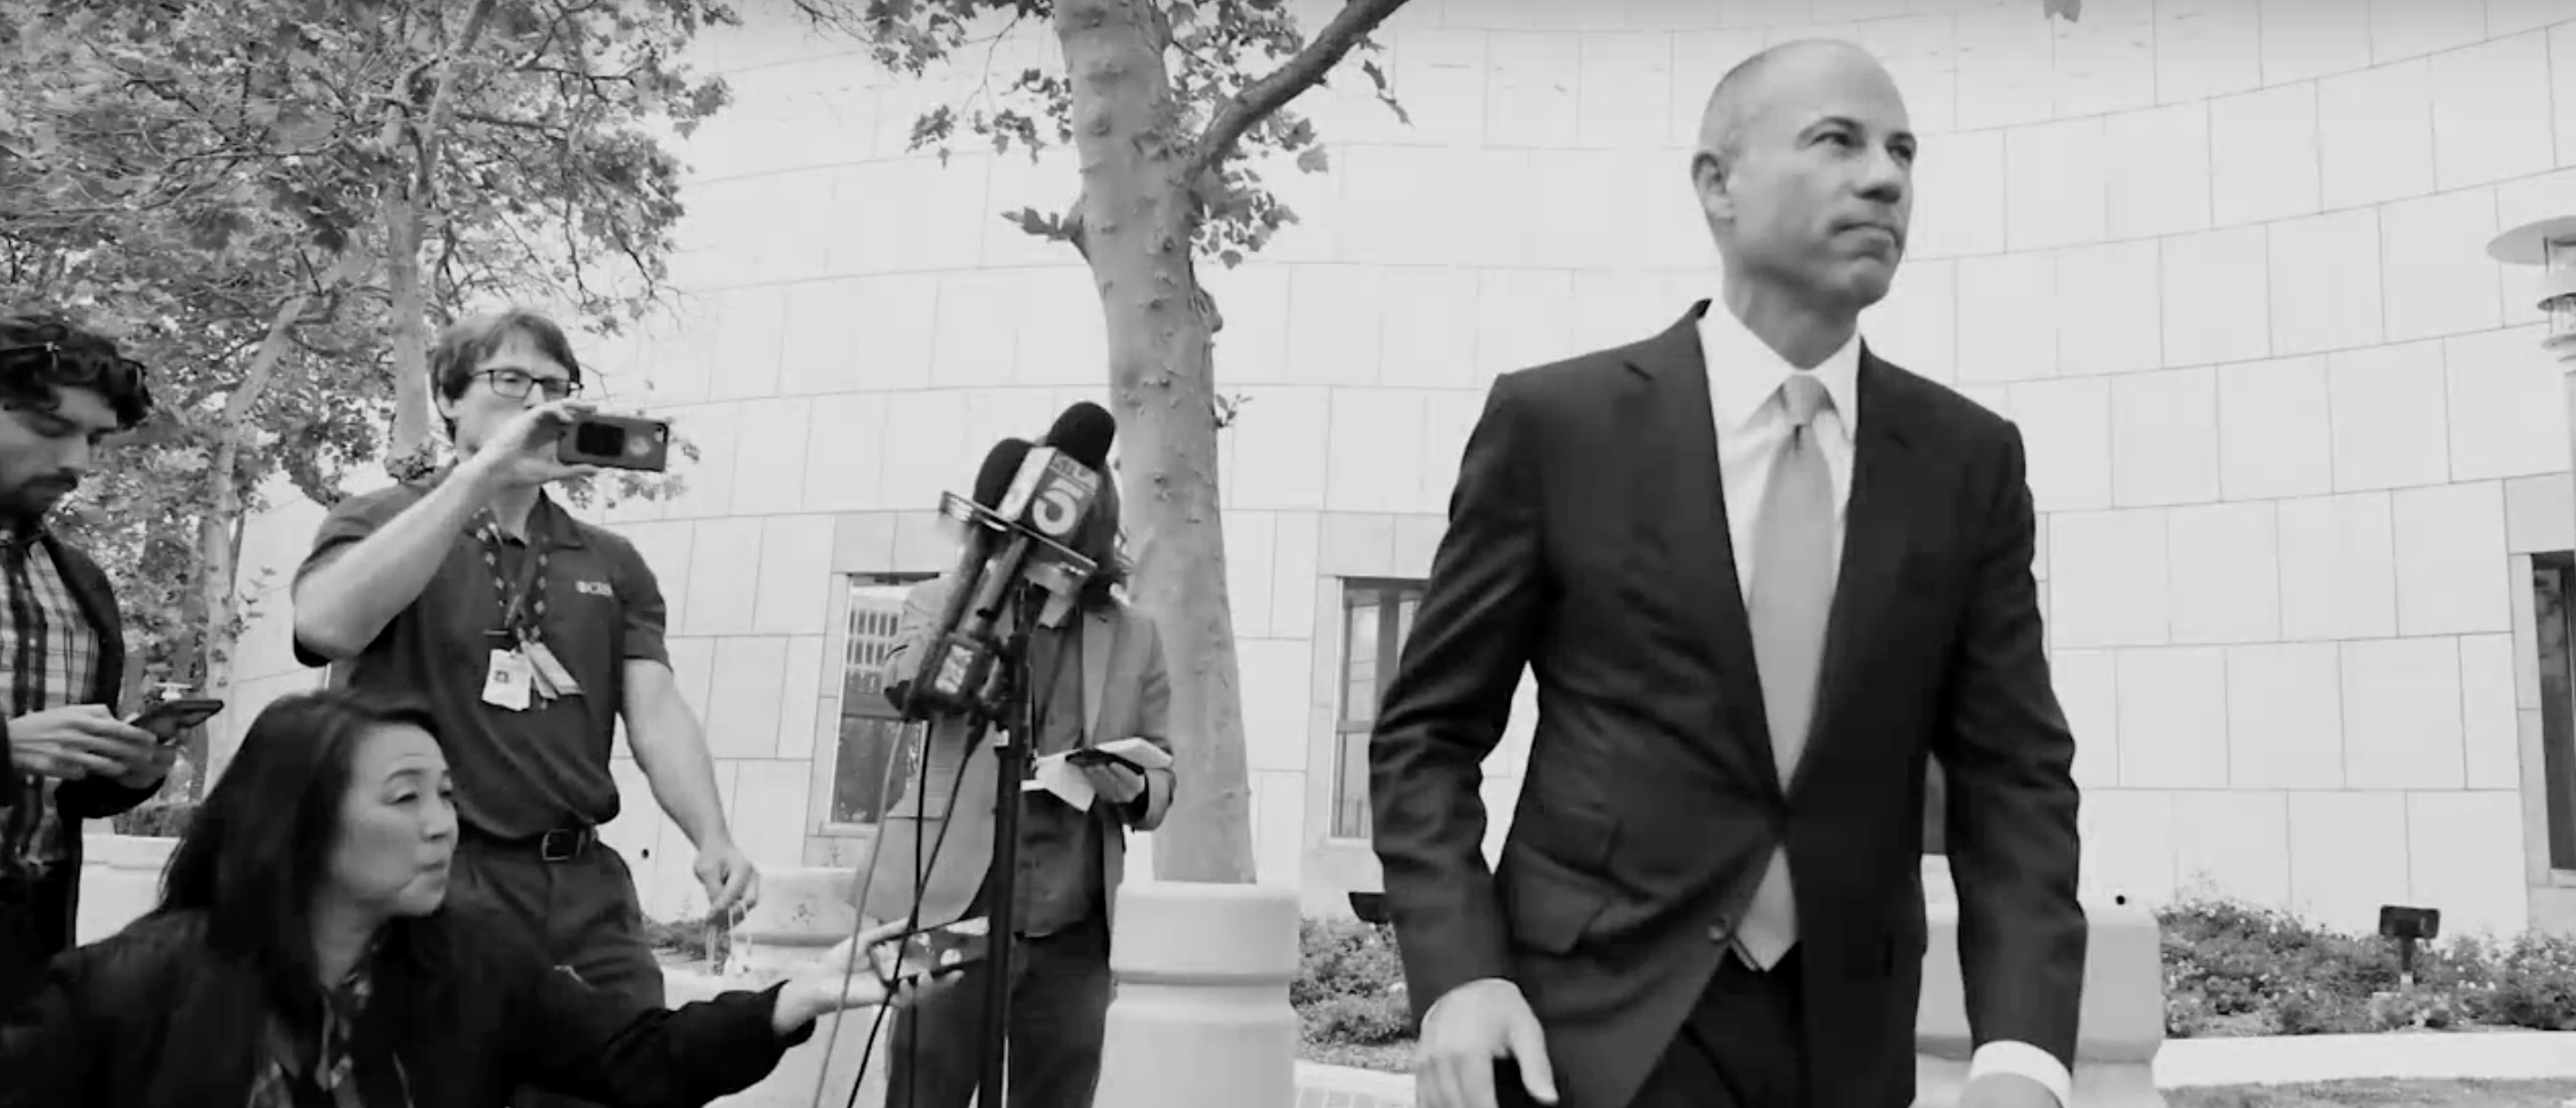 Media Praised Michael Avenatti, Now A Convicted Felon, As The Man Who Could Take Down Trump